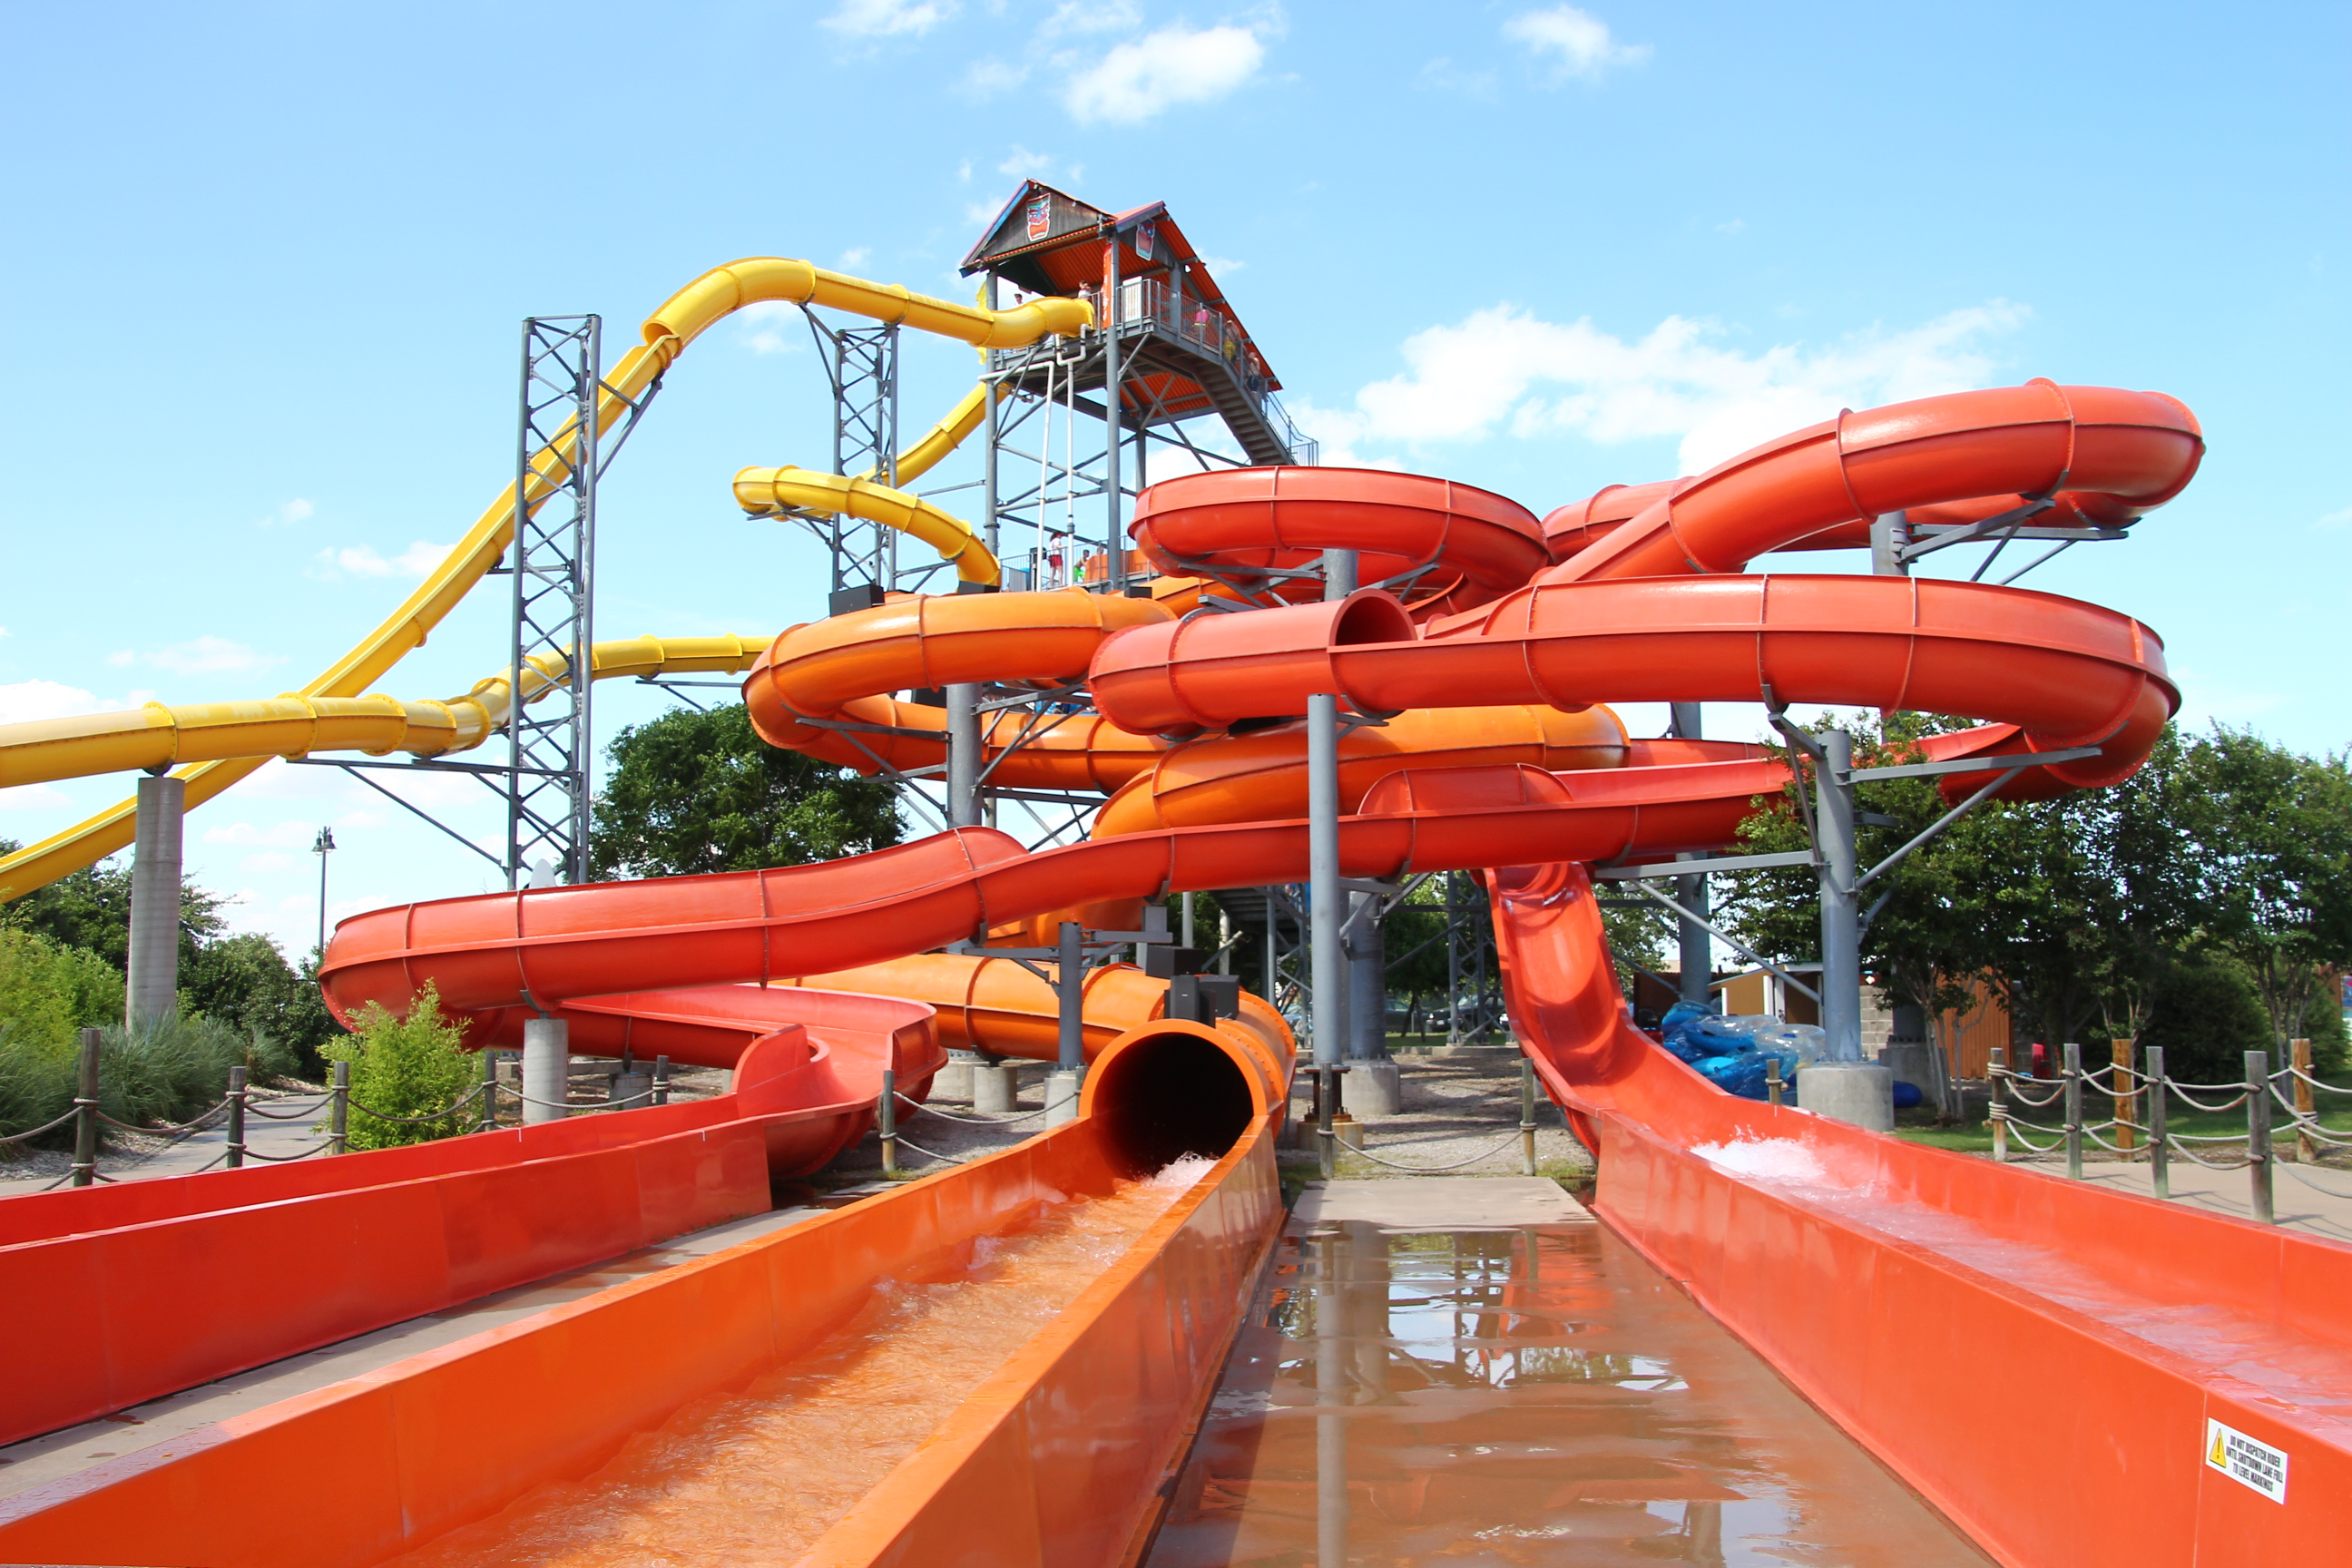 Top 15 Water Parks In Texas, USA: Fun In The Sun | Trip101